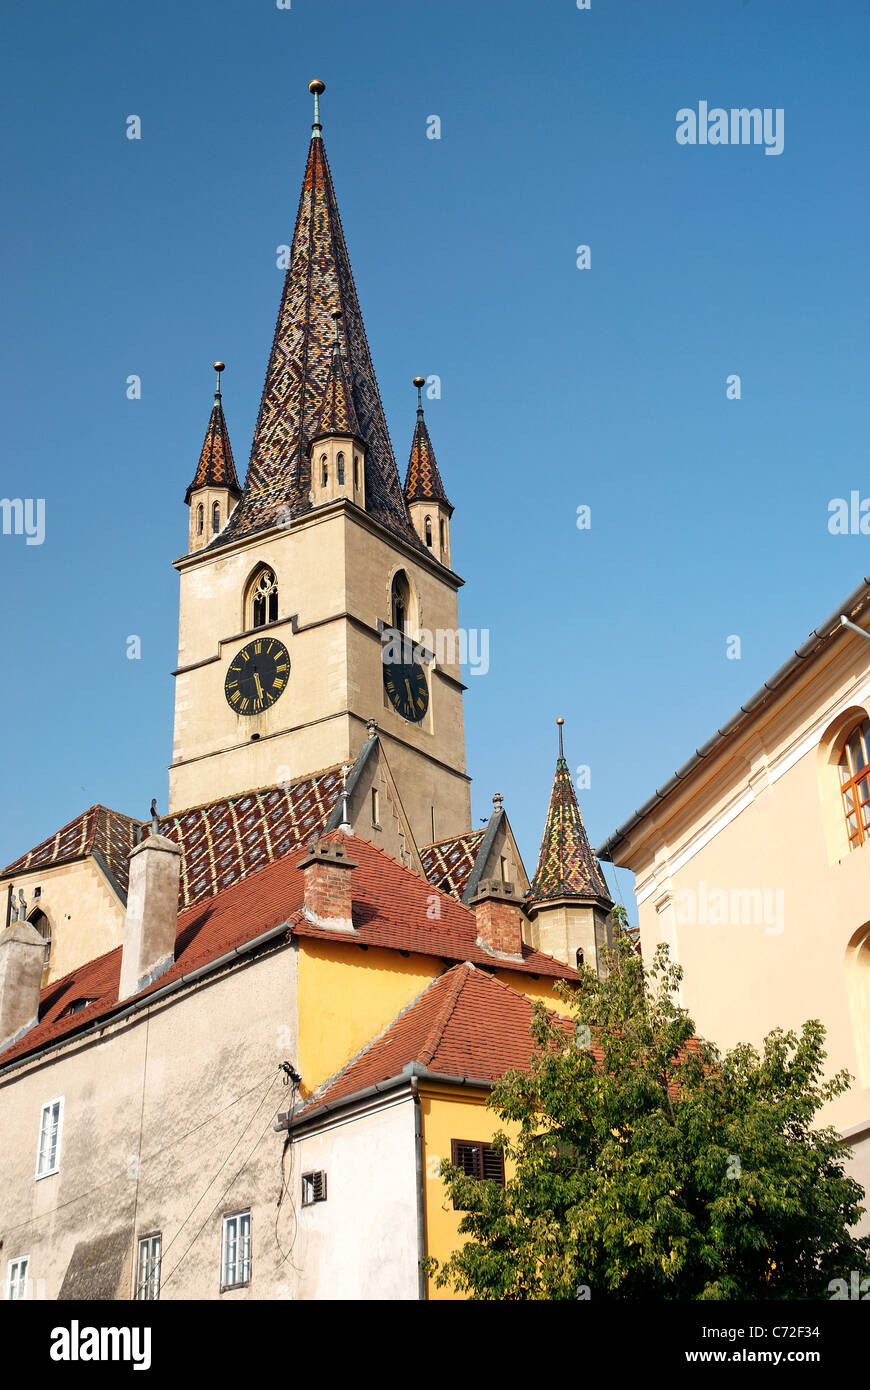 church spire in sighisoara romania - Stock Image